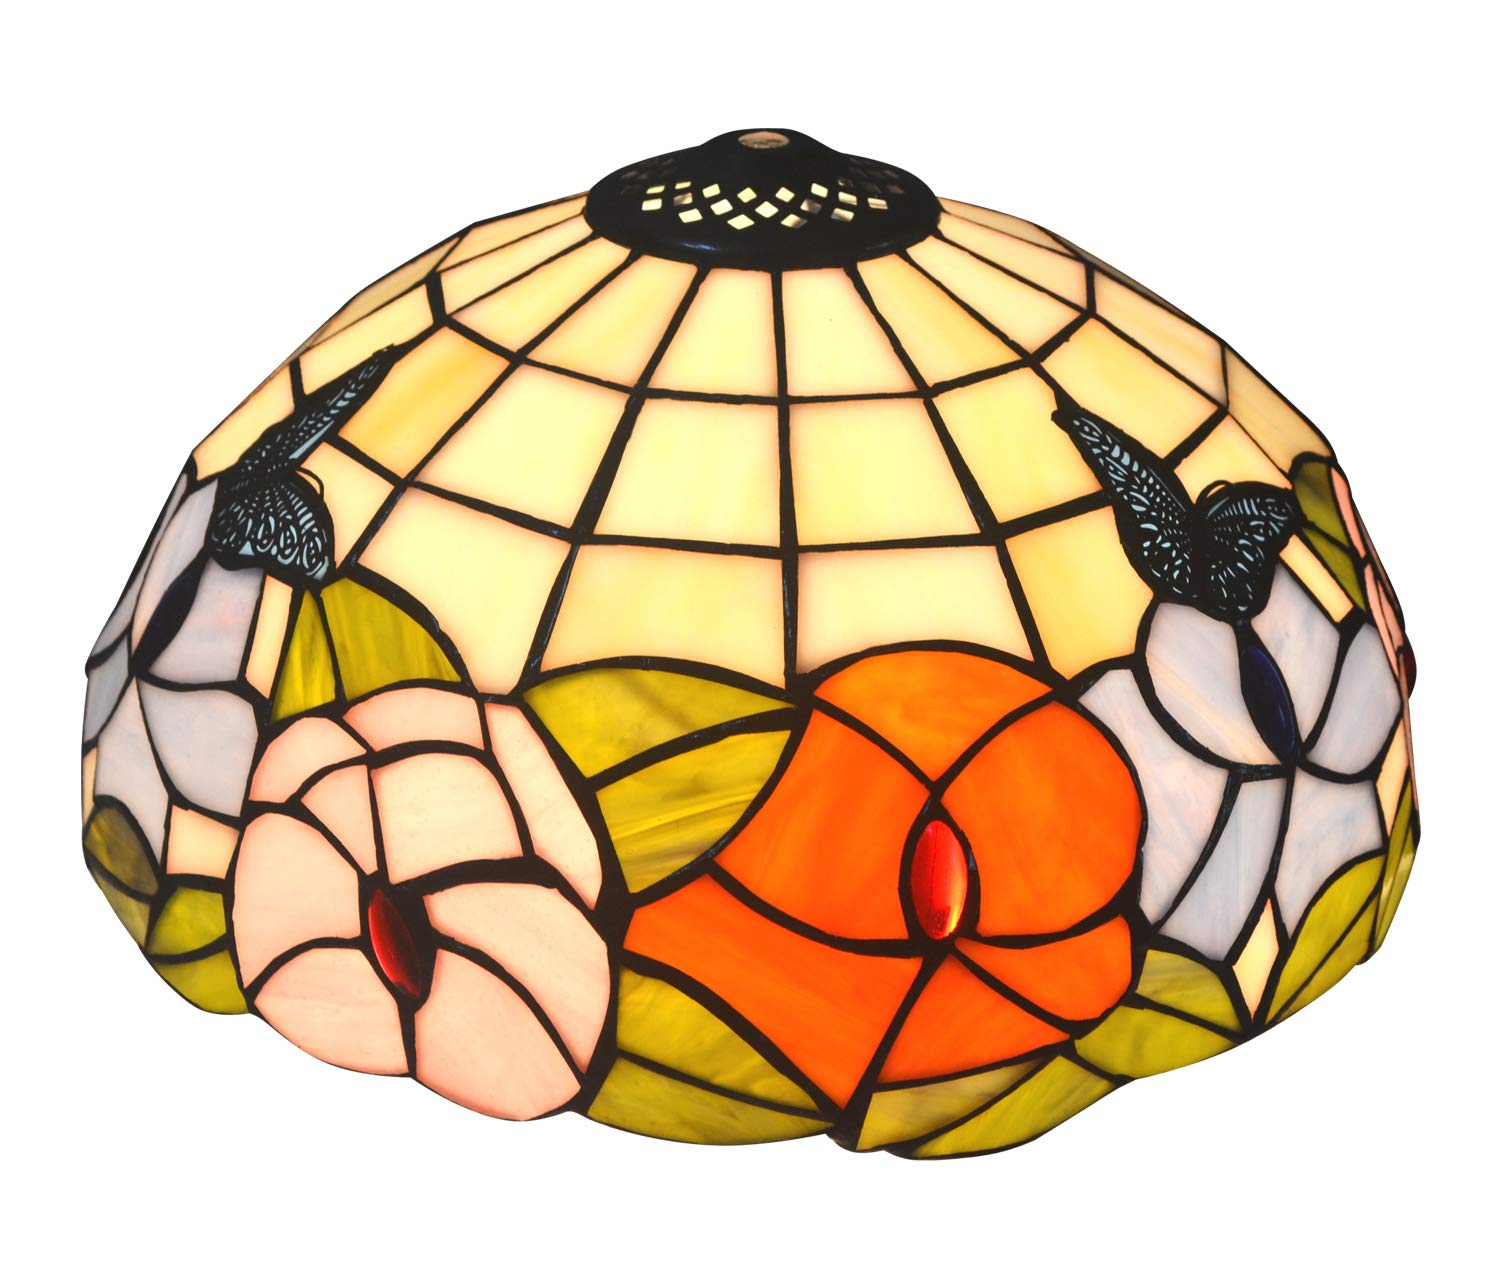 NOSHY Premium Tiffany Style Butterfly and Flower Stained Glass Table Replacement Lamp Shade,11-7/8'' Width,Pack of 1 (Only Lampshade)